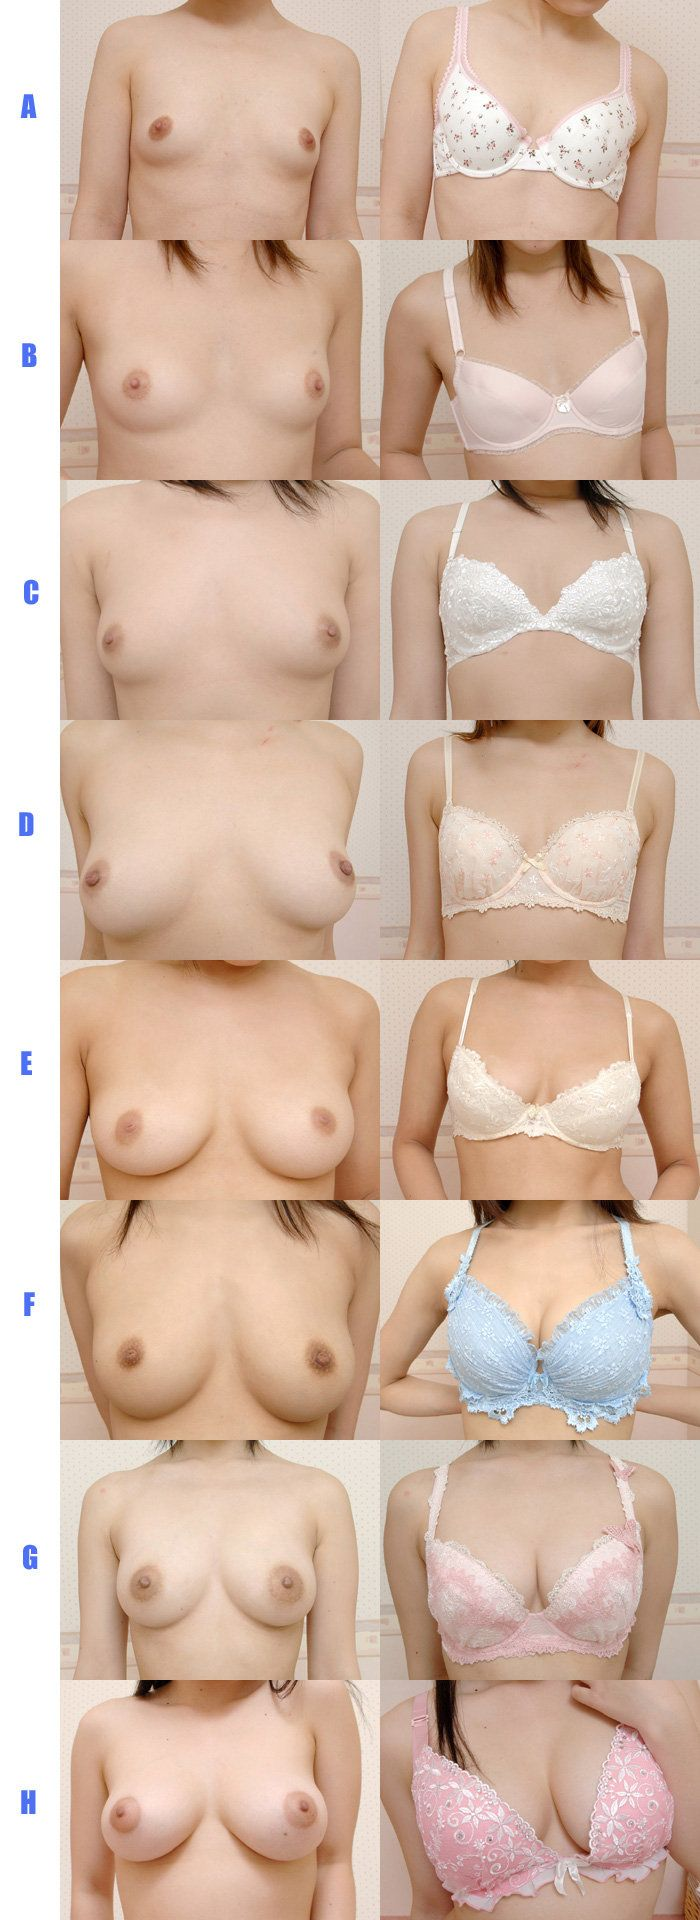 naked boob bra sizes xxx